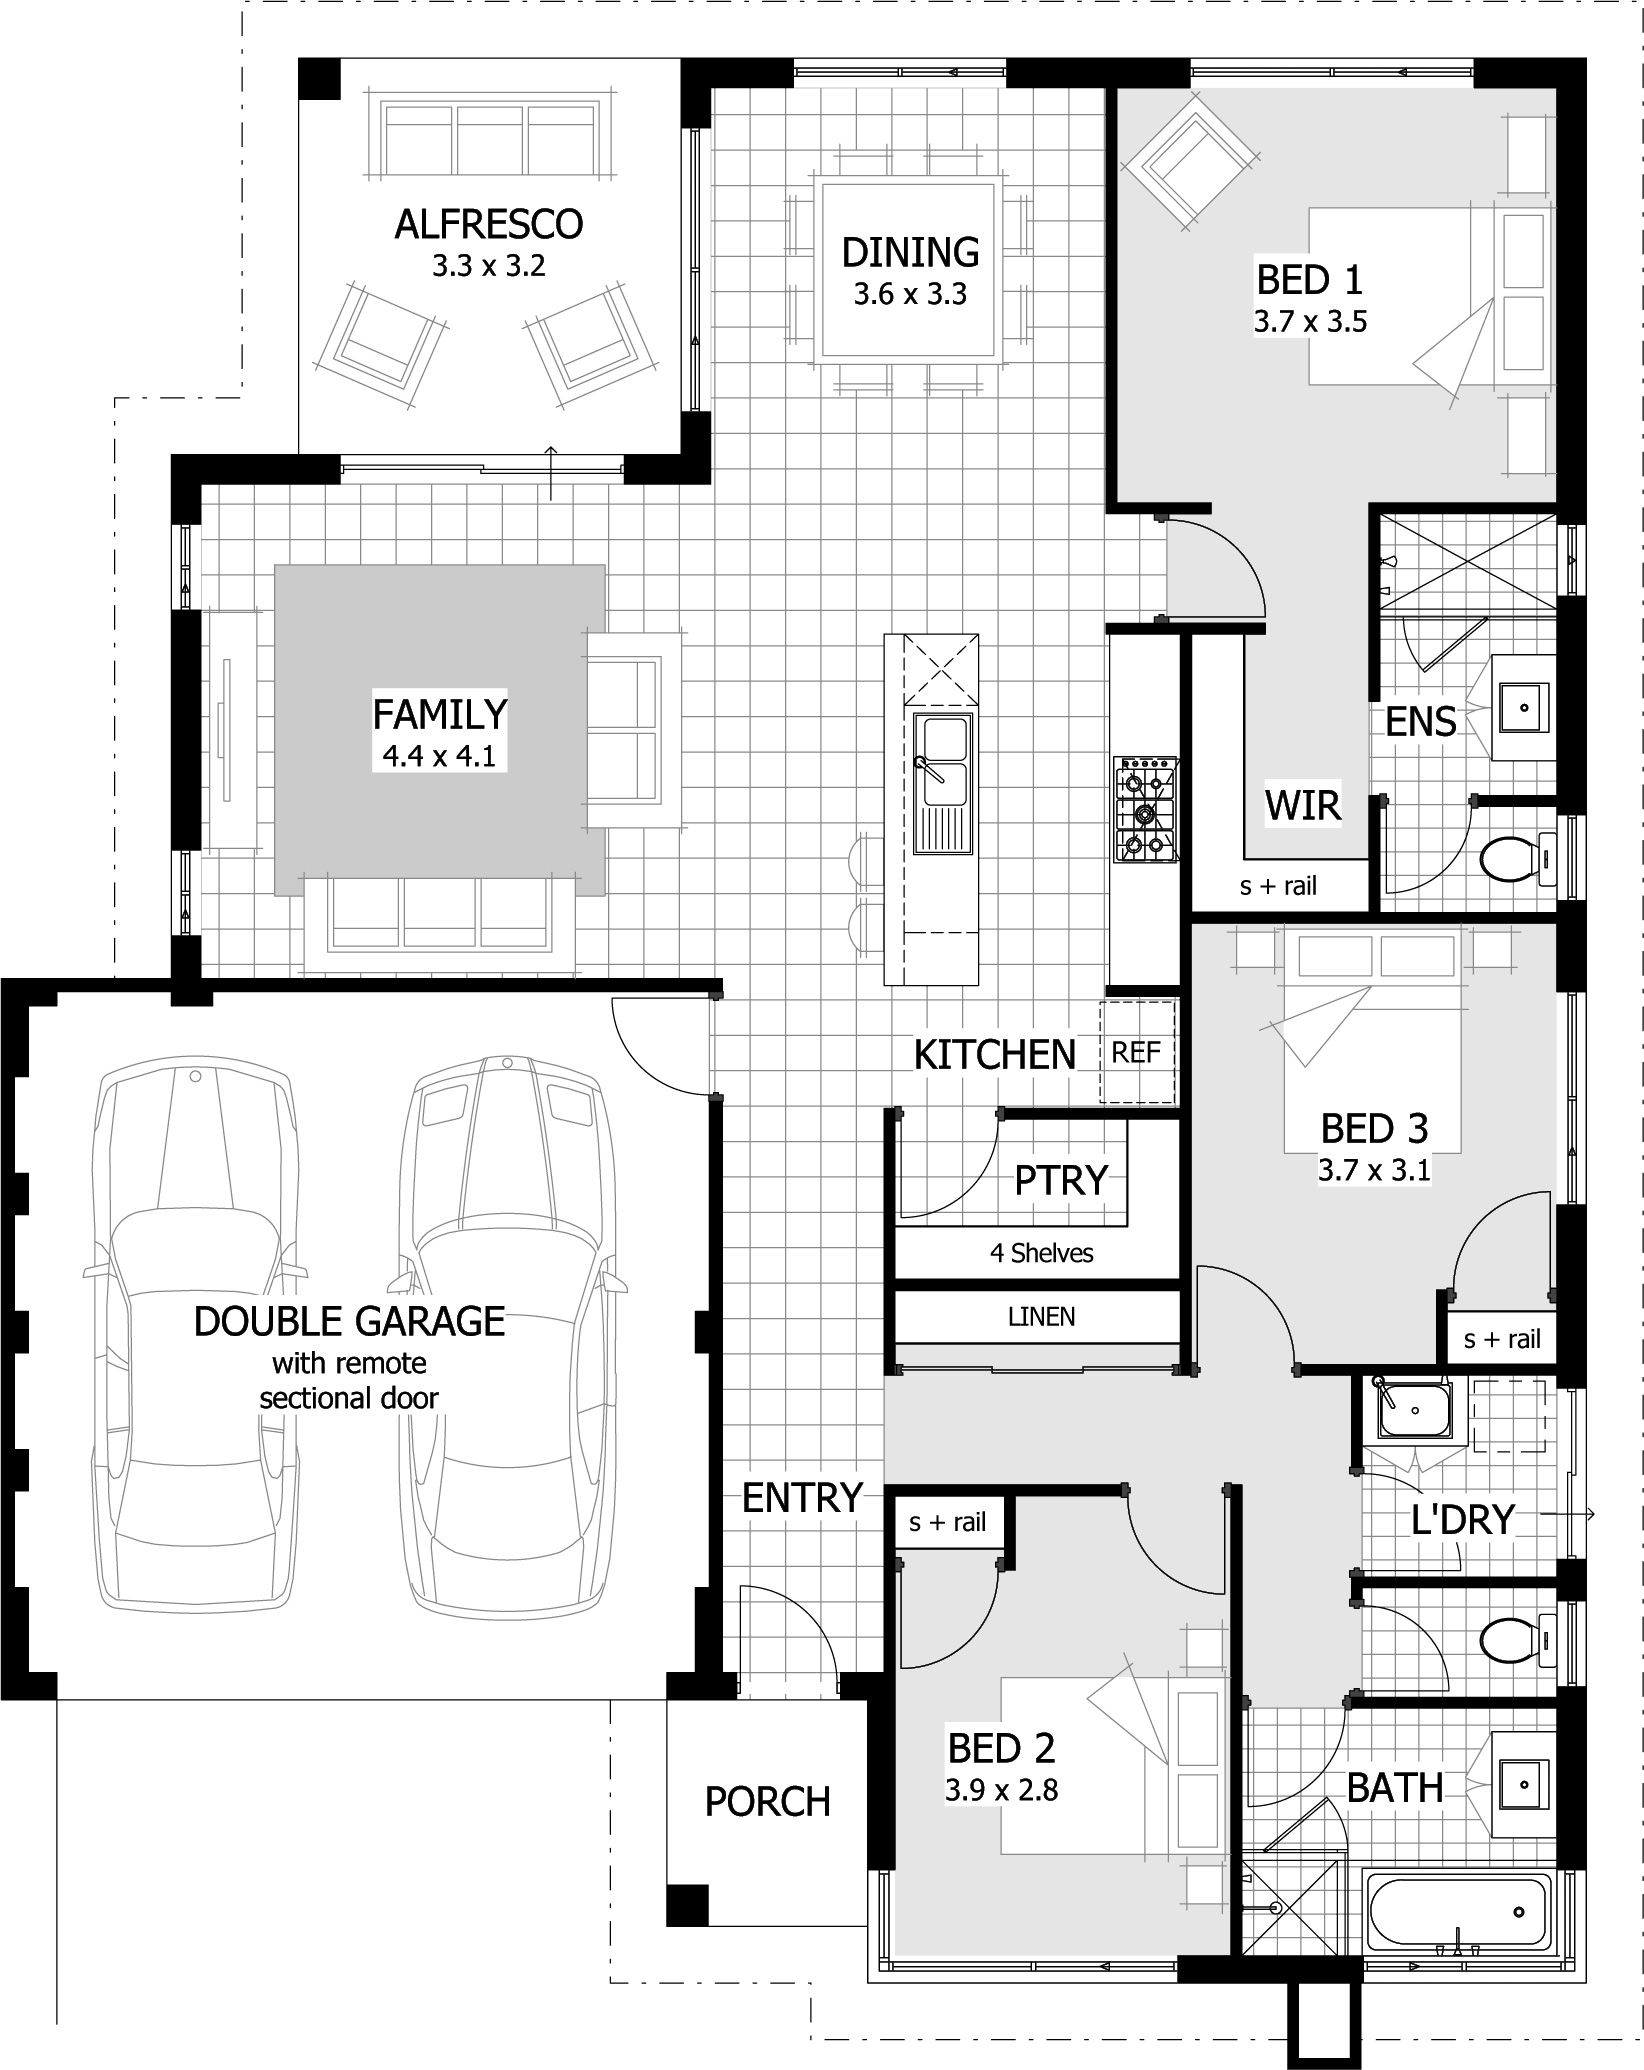 3 Bedroom House Floor Plan 3 Bedroomed House Designs Beautiful 3 Bedroom House Plans 35 In 2020 Bedroom House Plans Three Bedroom House Plan House Plans